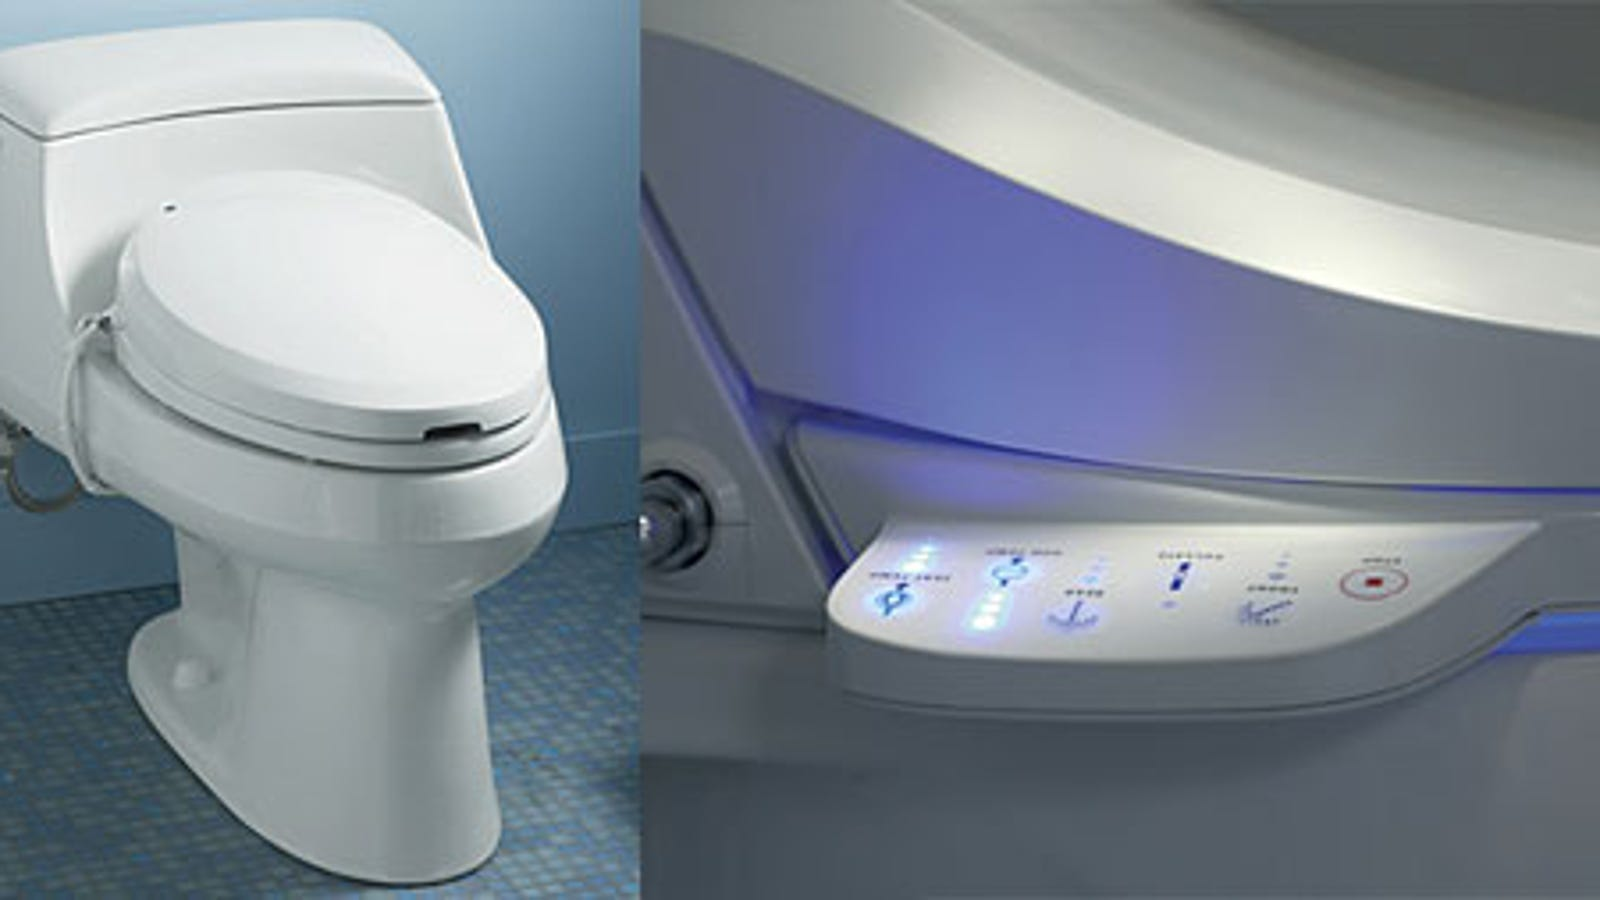 Kohler C3 Series Toilet Seats Offer Hands-Free Butt-Washing ...